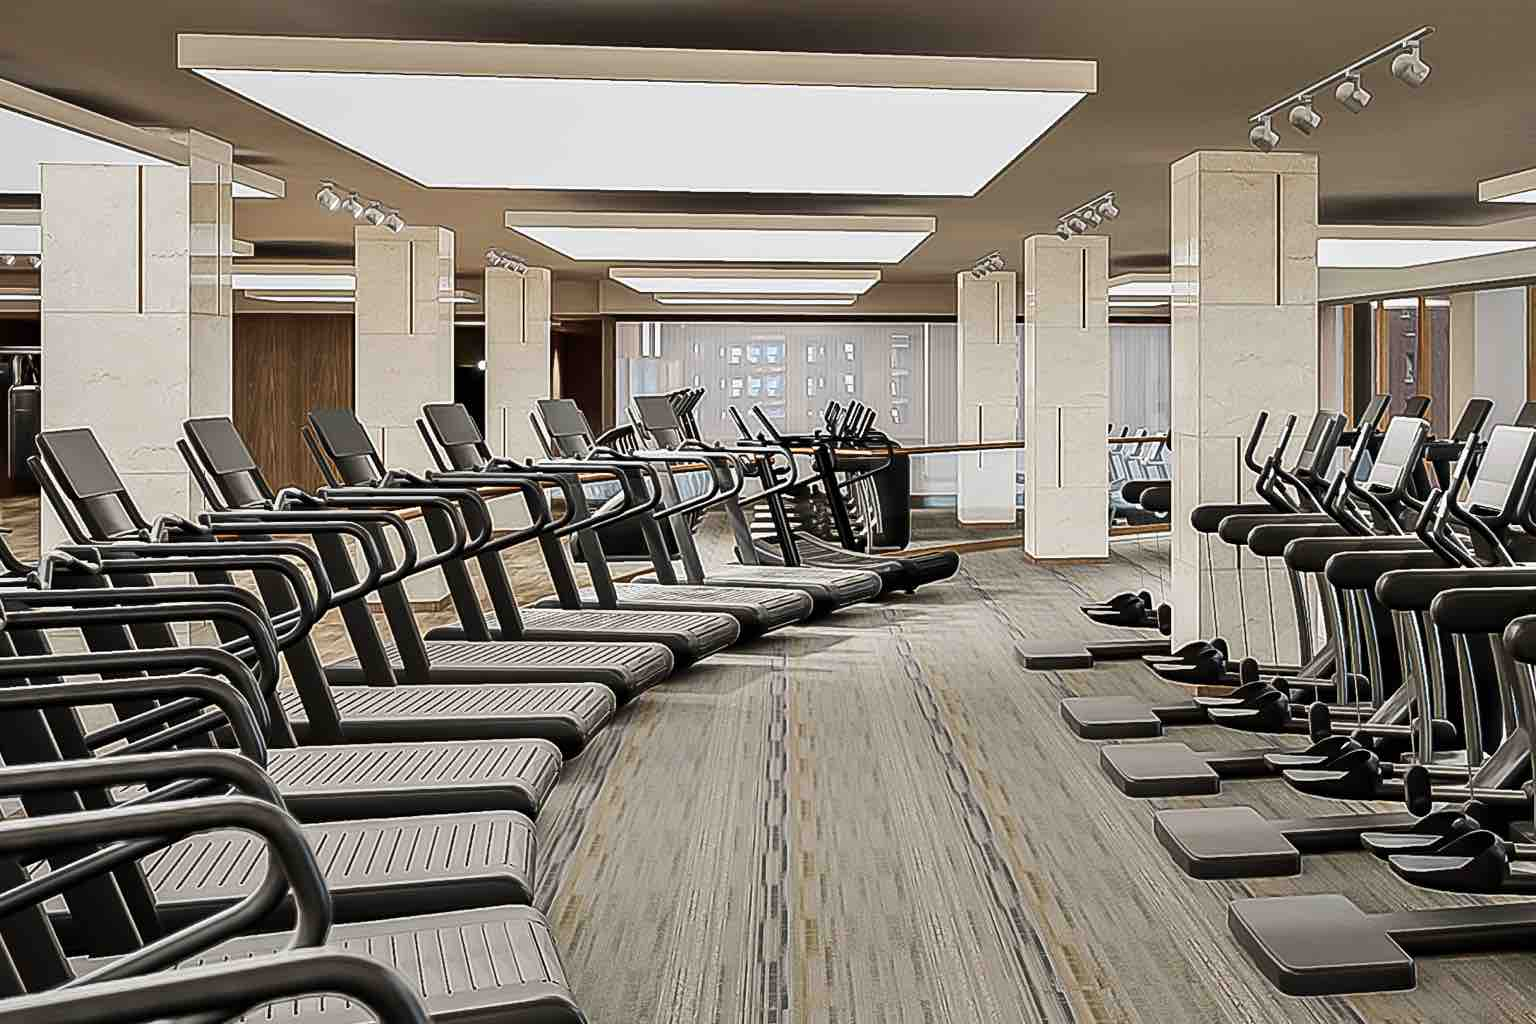 The fitness floor features all the latest and greatest functional training equipment.